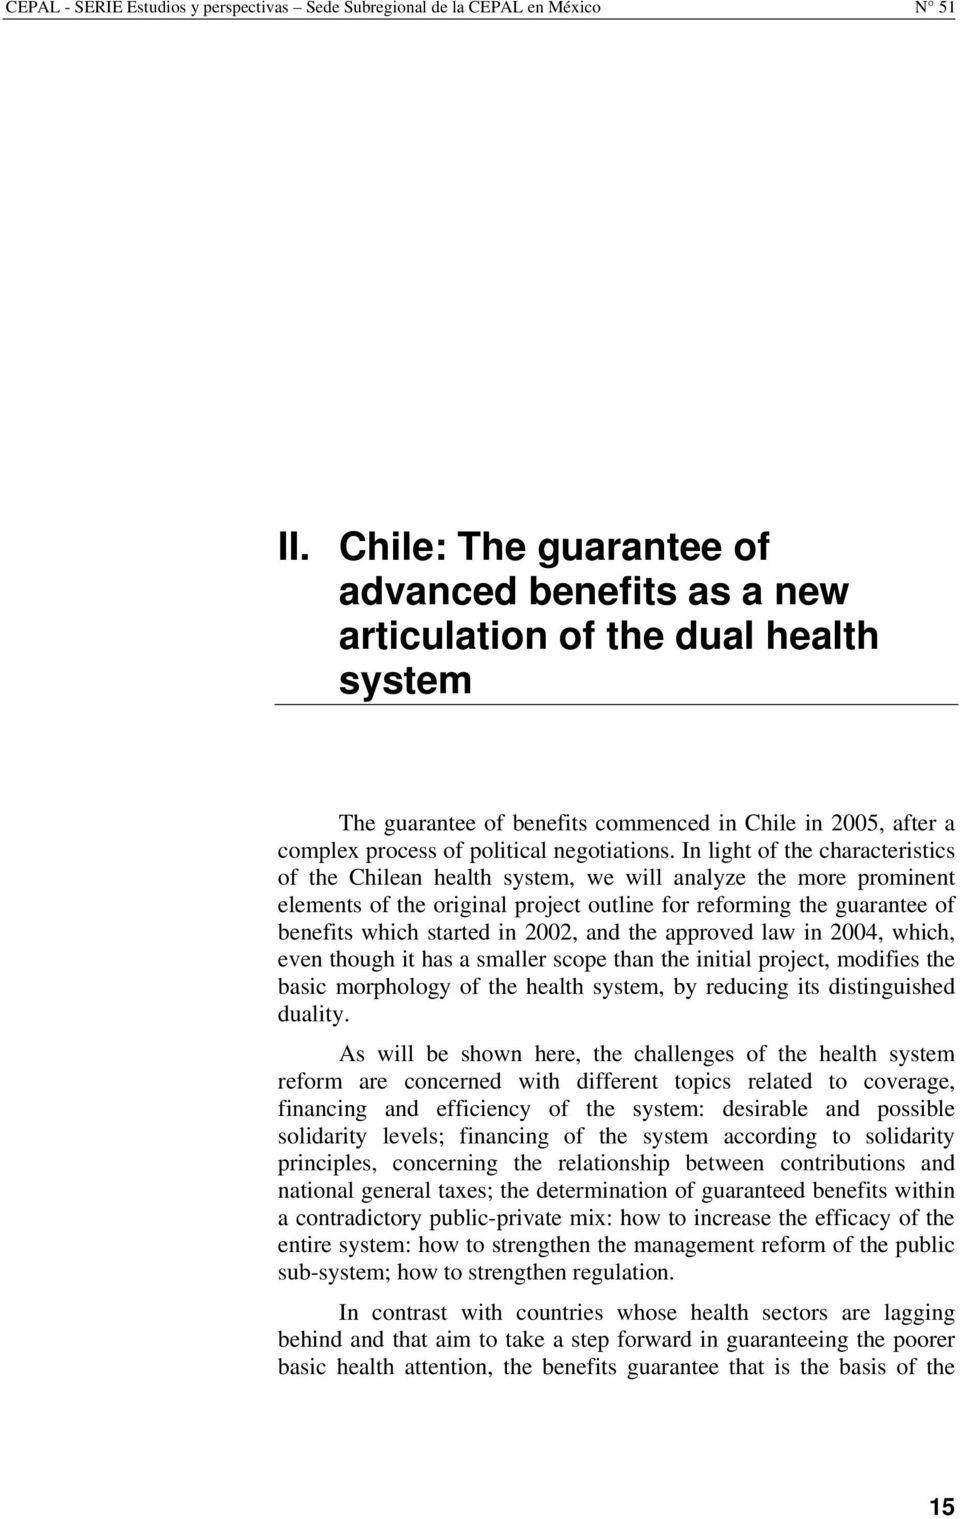 In light of the characteristics of the Chilean health system, we will analyze the more prominent elements of the original project outline for reforming the guarantee of benefits which started in